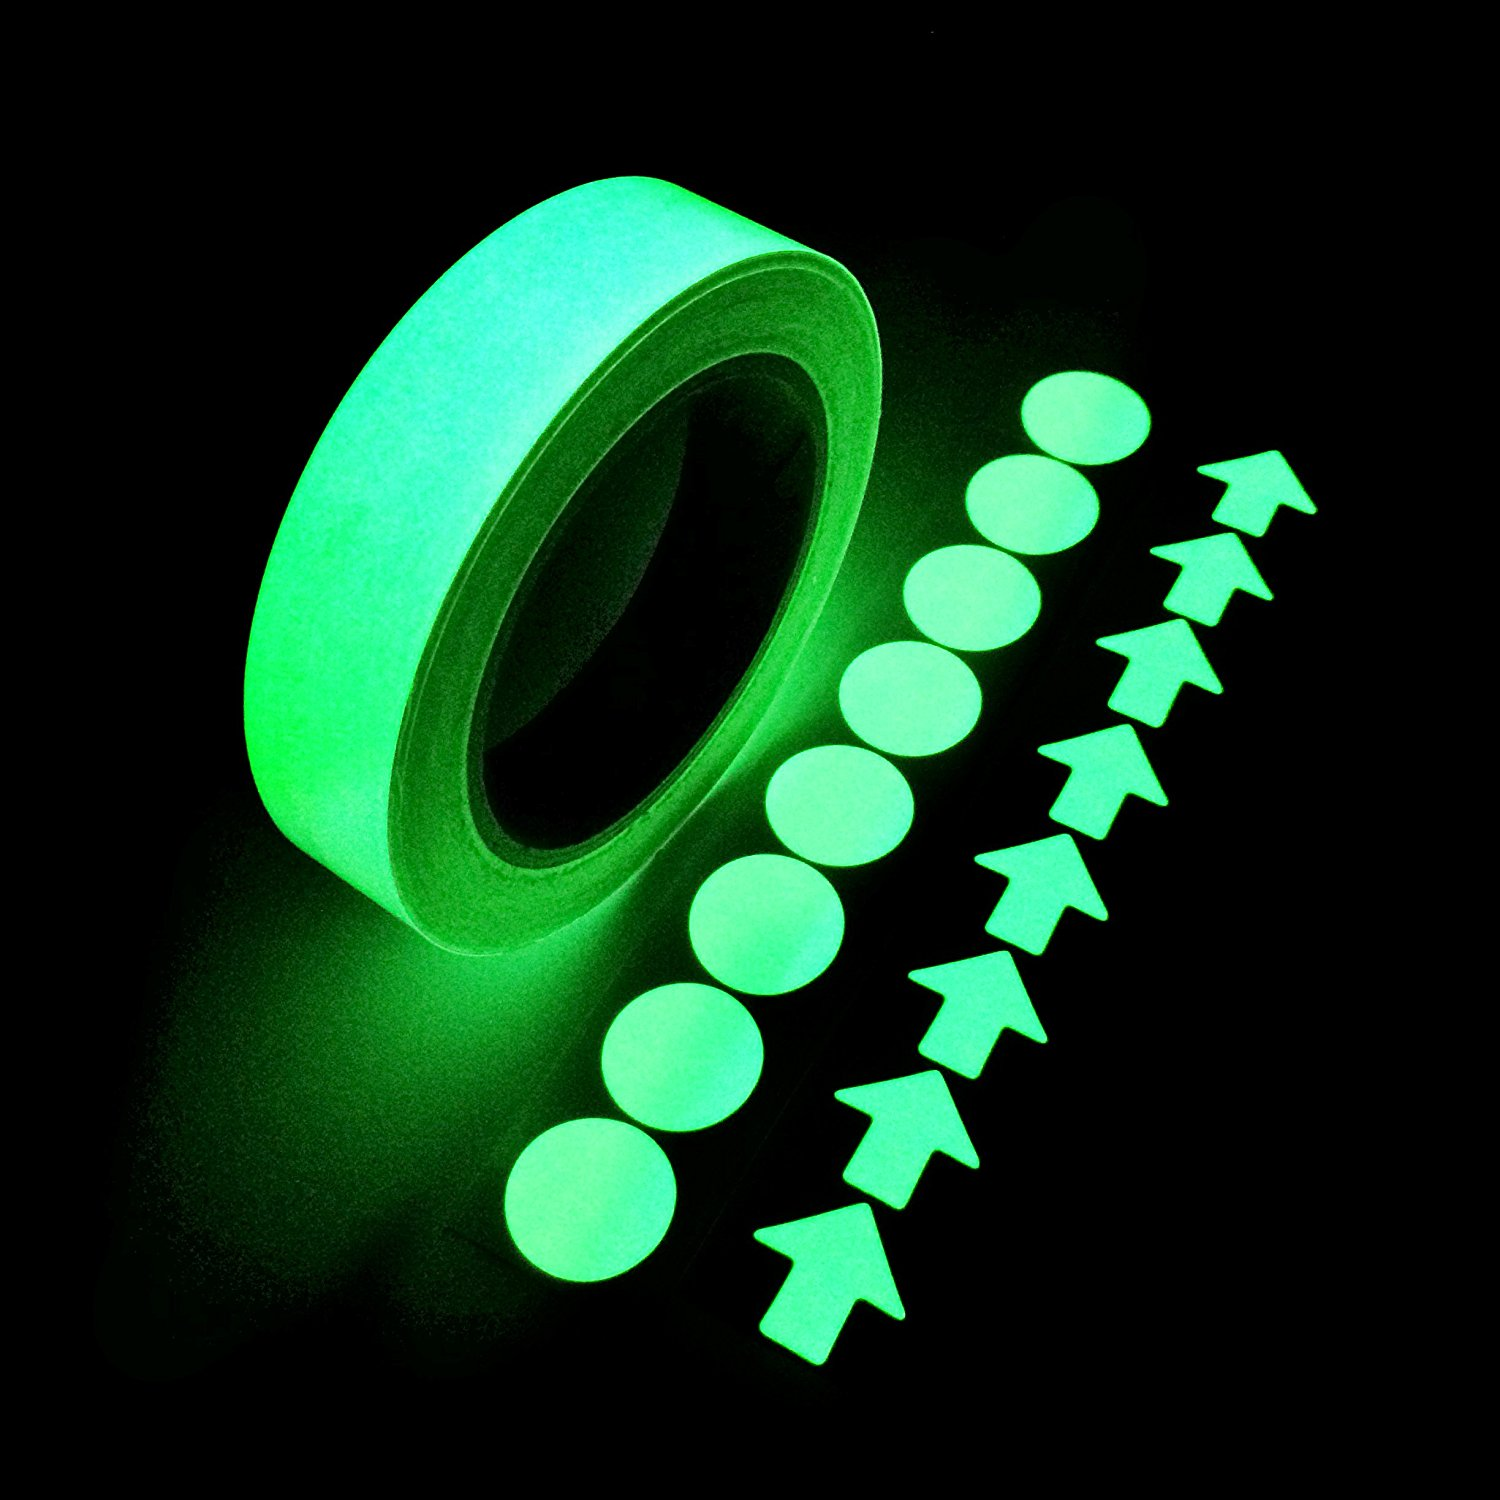 Glow in the Dark Self-adhesive Tape, Green Light Luminous Tape Sticker 20 Feet X 0.8 Inch Removable Waterproof Durable Wearable Stable Safety Fluorescent Emergency Roll